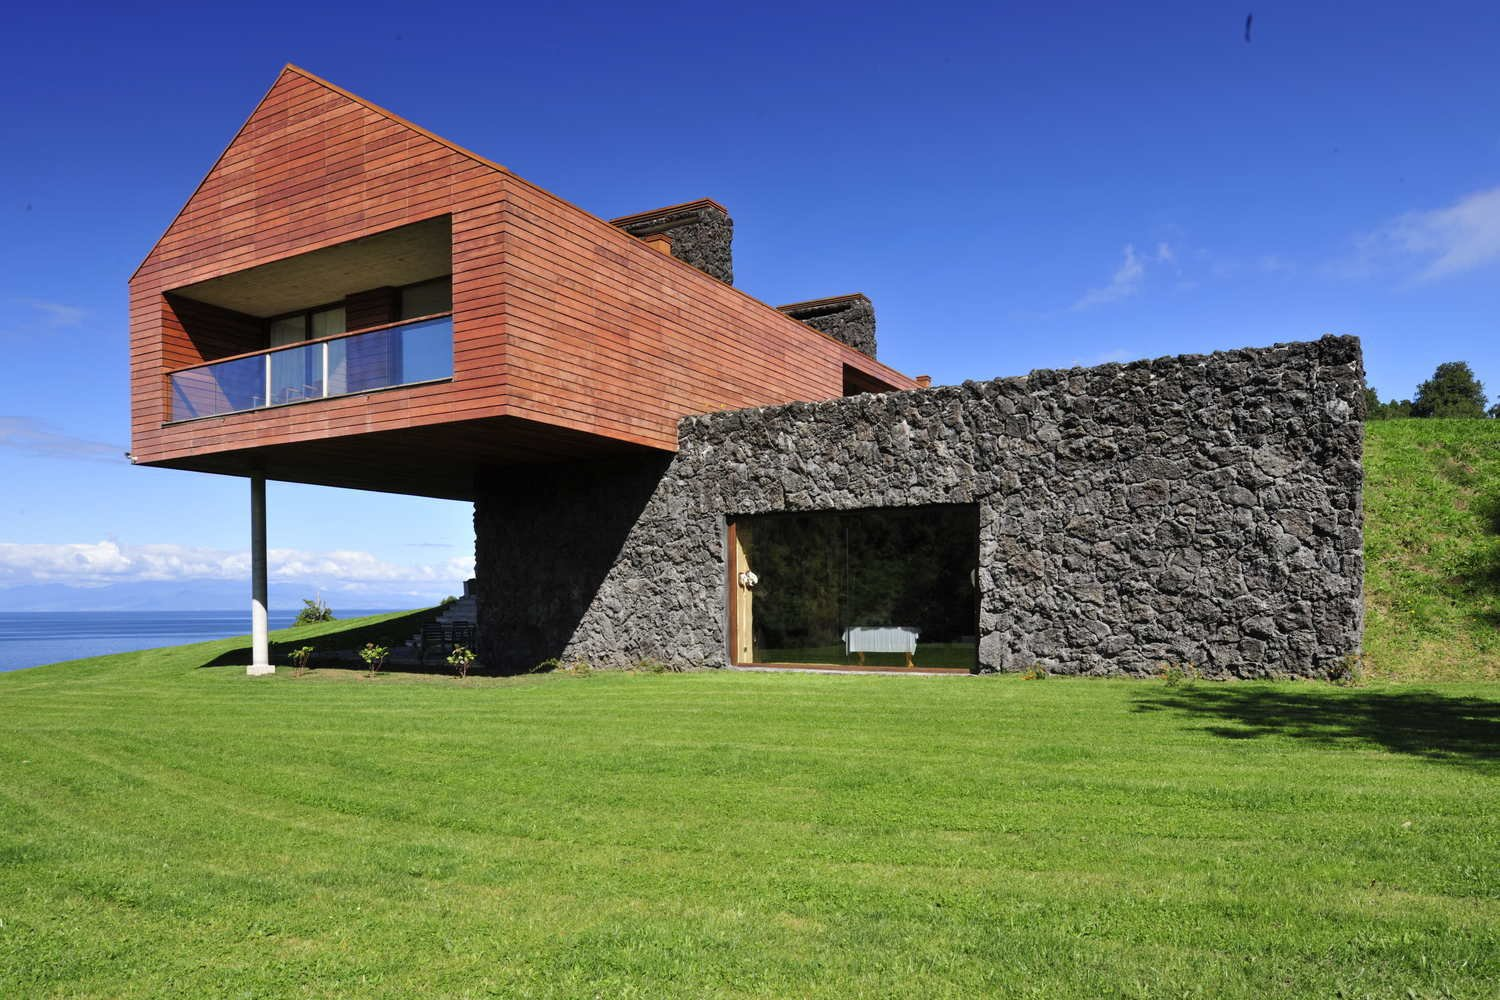 Via ArchDaily, photo by  Photo 4 of 11 in 10 Spectacular Modern Abodes